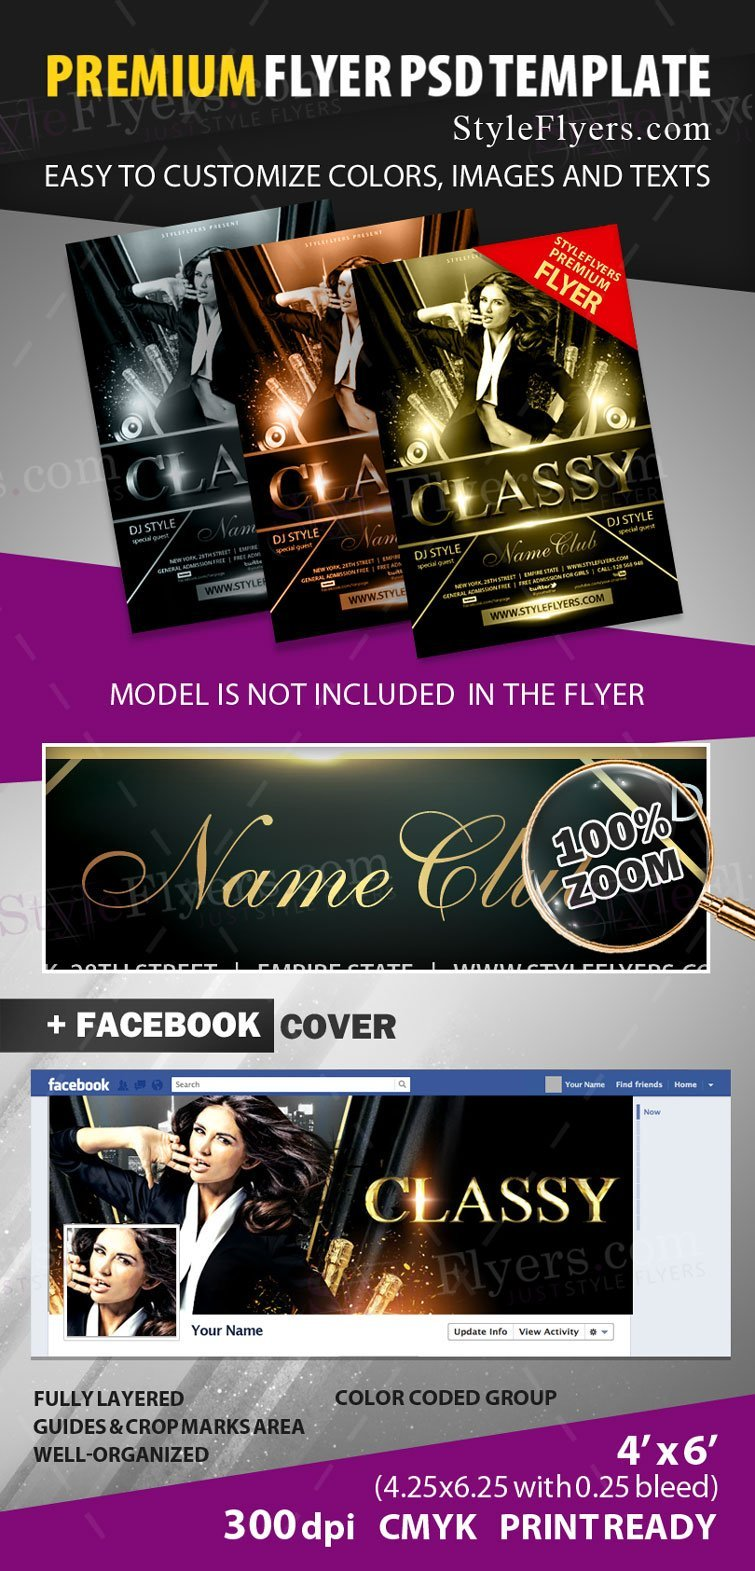 classy-flyer-preview_premium